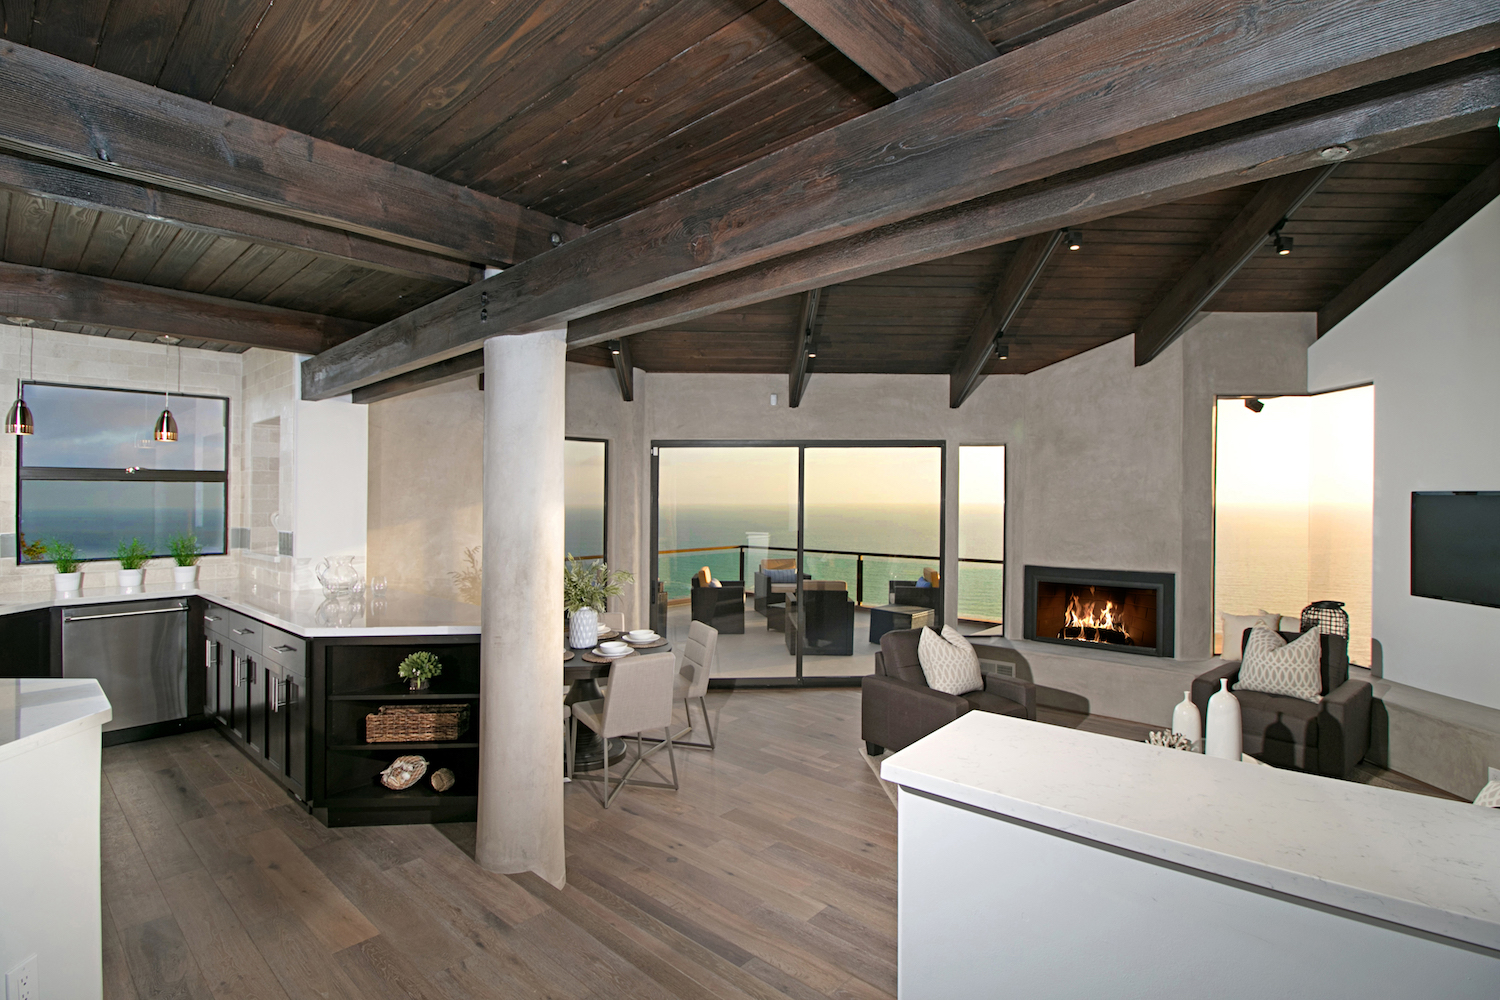 California coastal modern